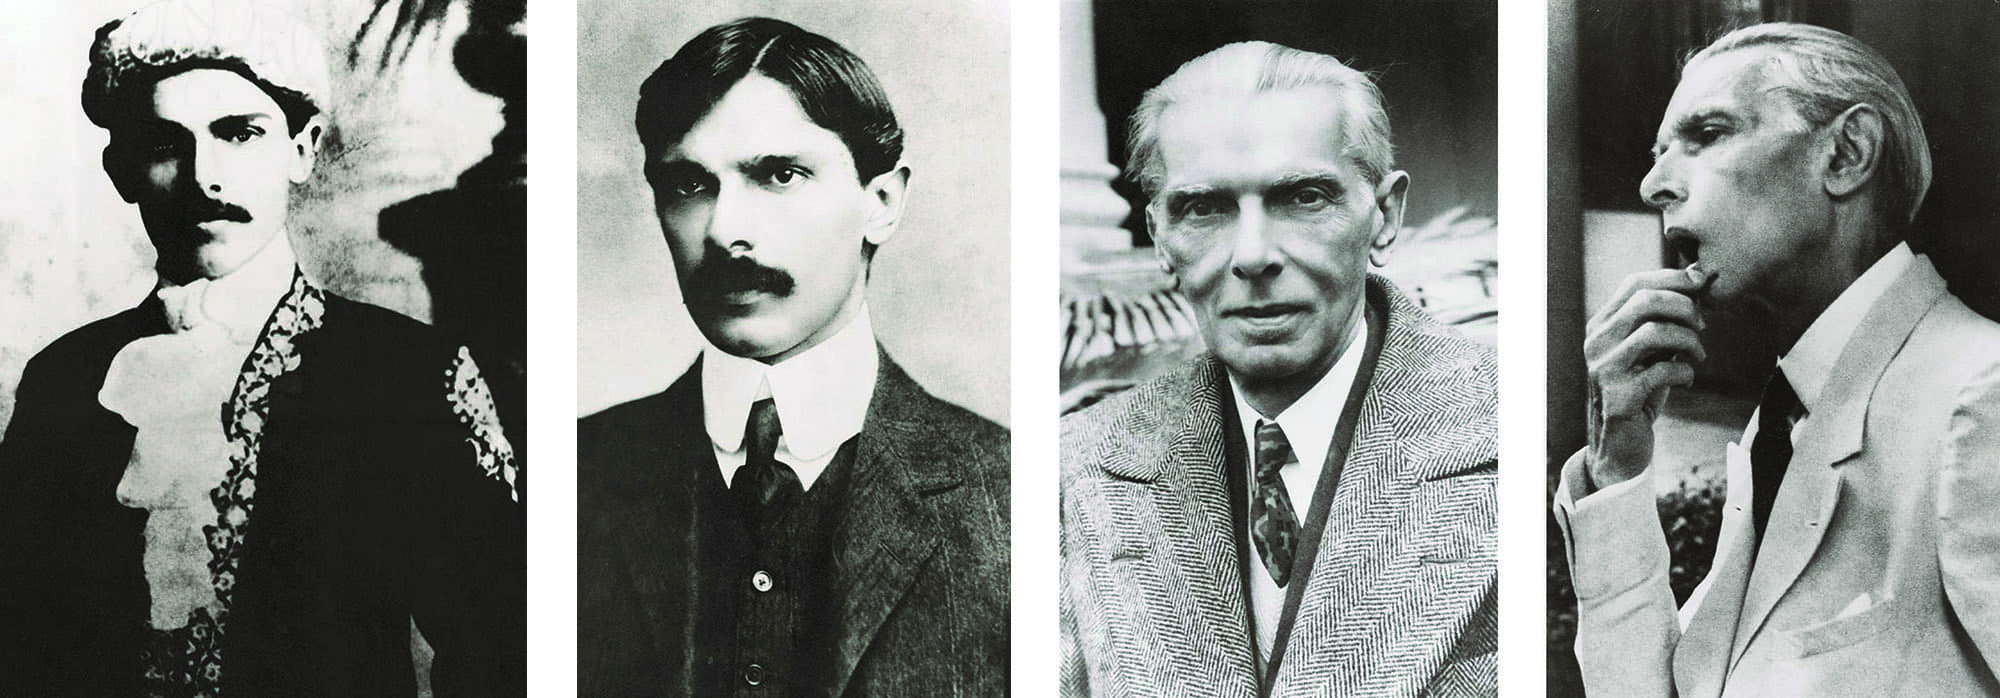 Mr Jinnah was always aesthetically dressed whether he was wearing a traditional attire, a three-piece suit during his early years as a young lawyer in Bombay, even when caught unawares on camera during a contemplative moment wearing a white suit, or in an overcoat during the Simla Conference.